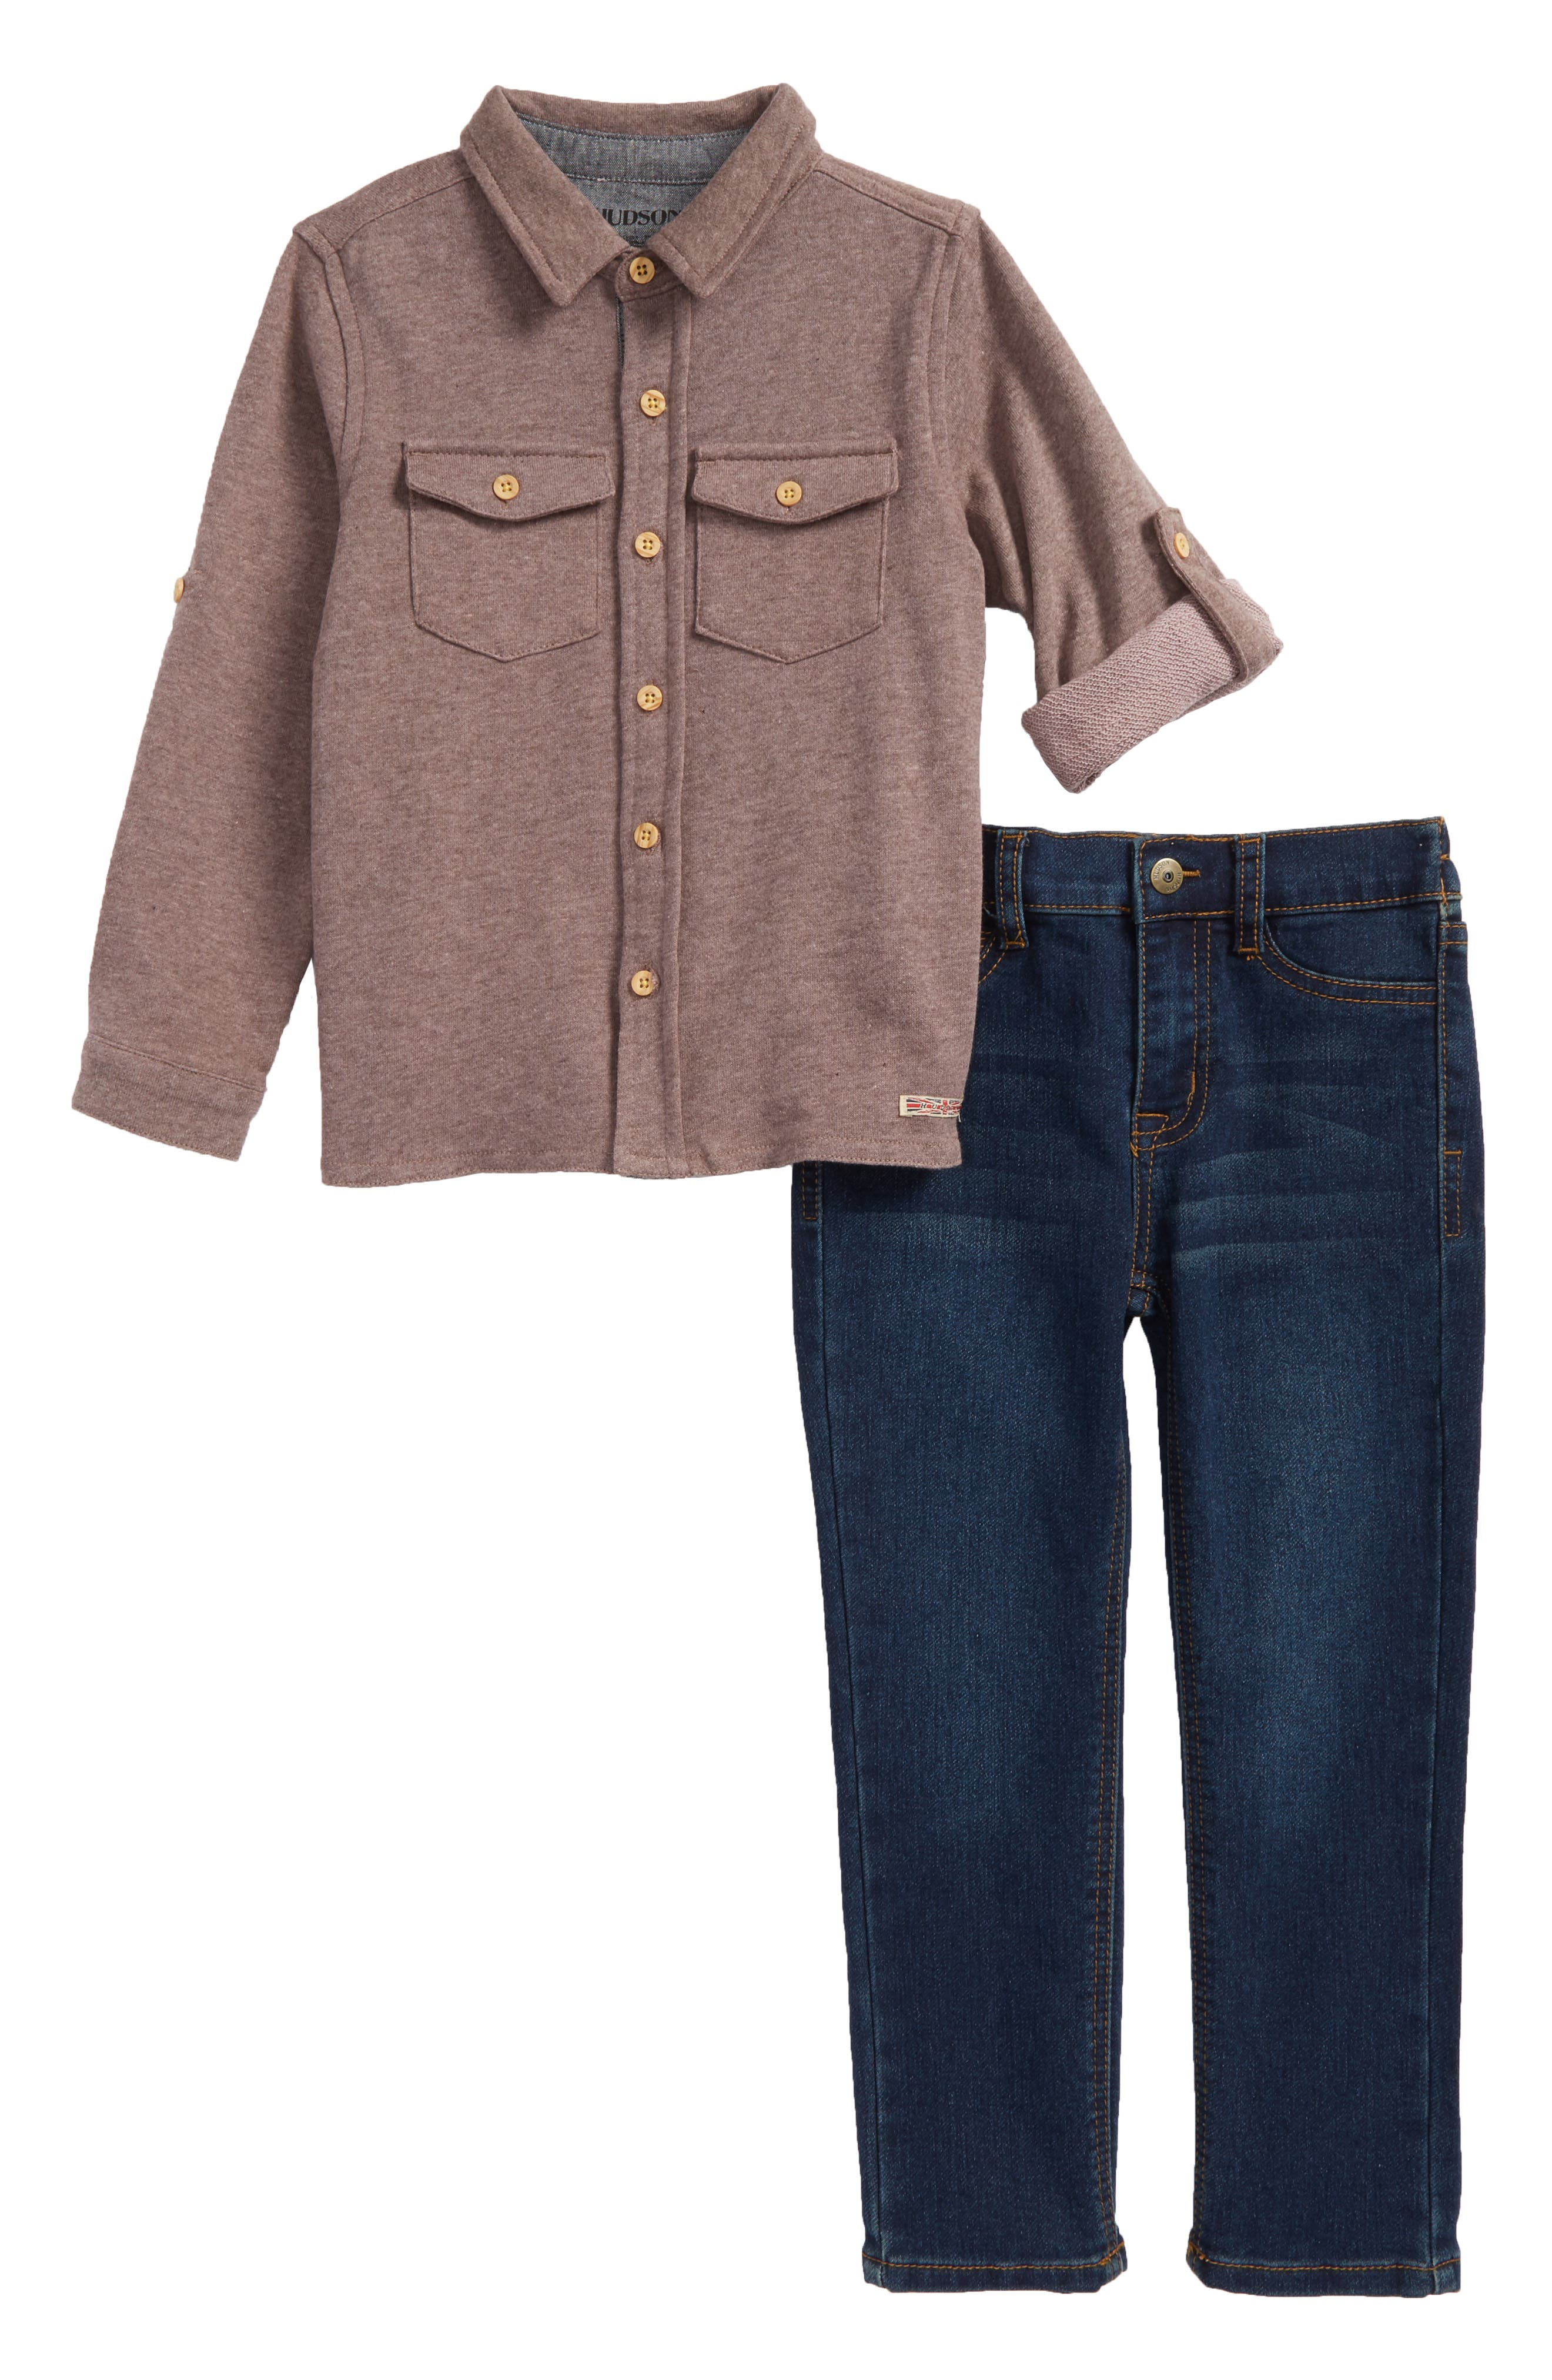 French Terry Shirt & Jeans Set,                             Main thumbnail 1, color,                             Ink